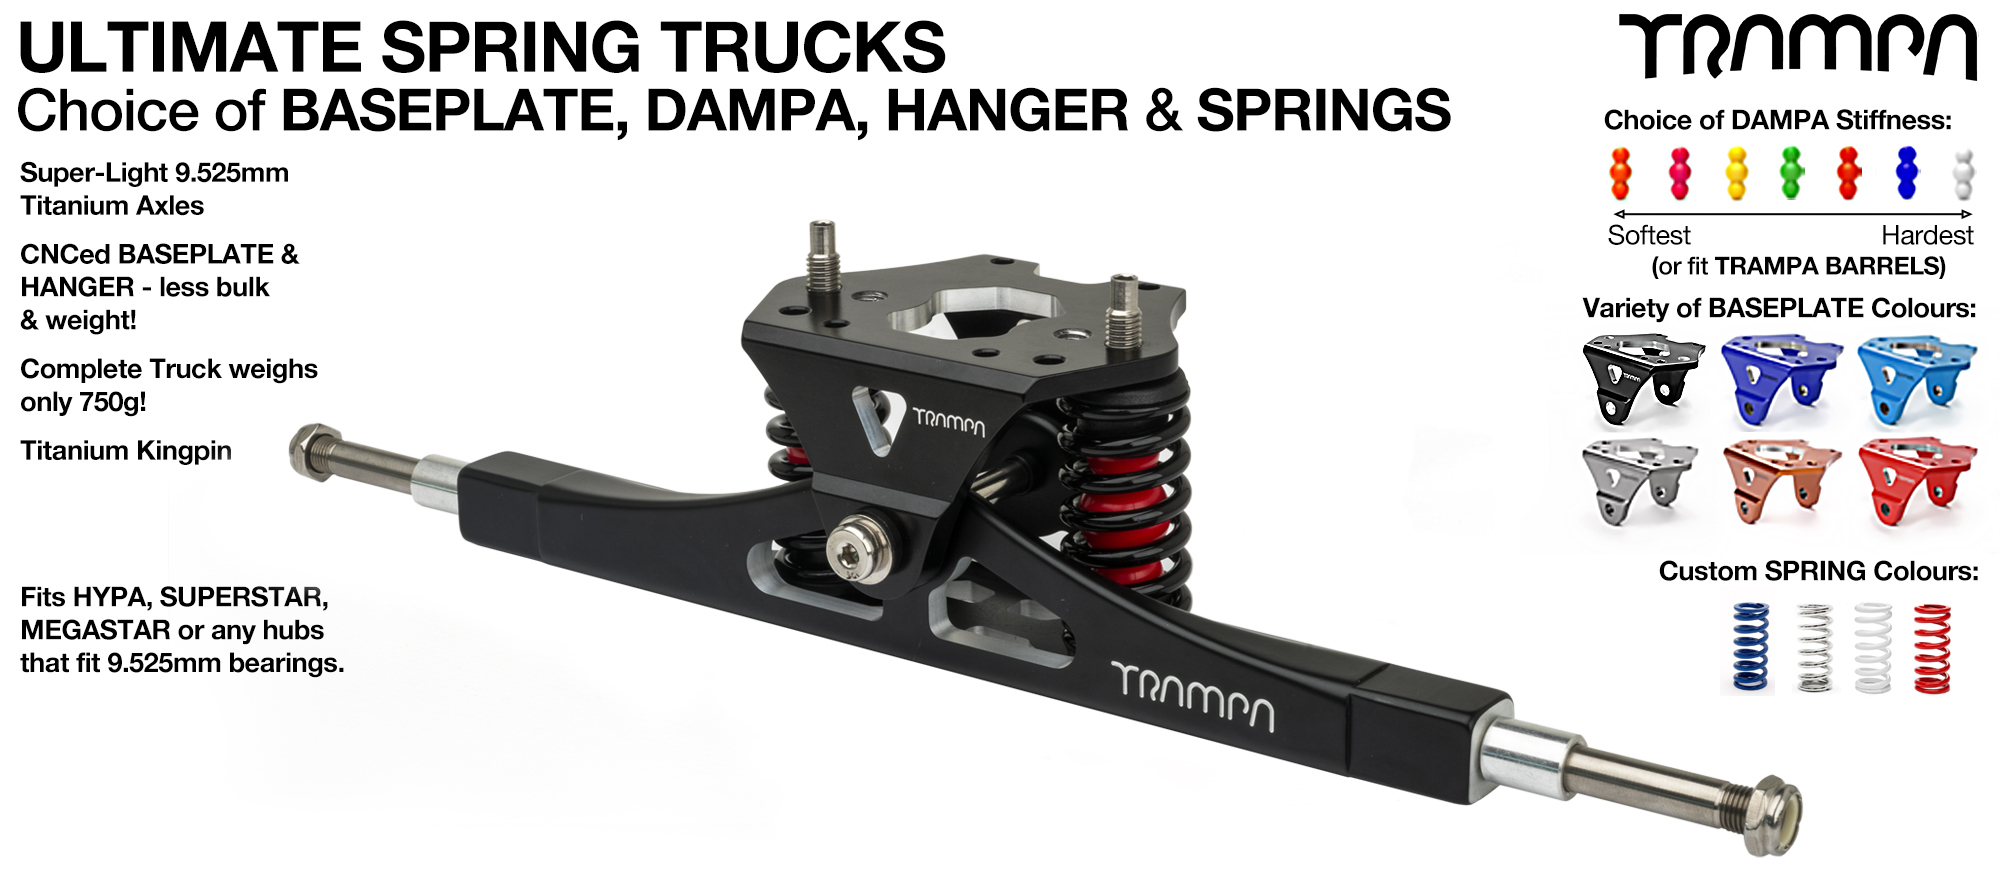 ULTIMATE ATB TRUCK - 16 Inch wide 9.525mm TITANIUM Axel